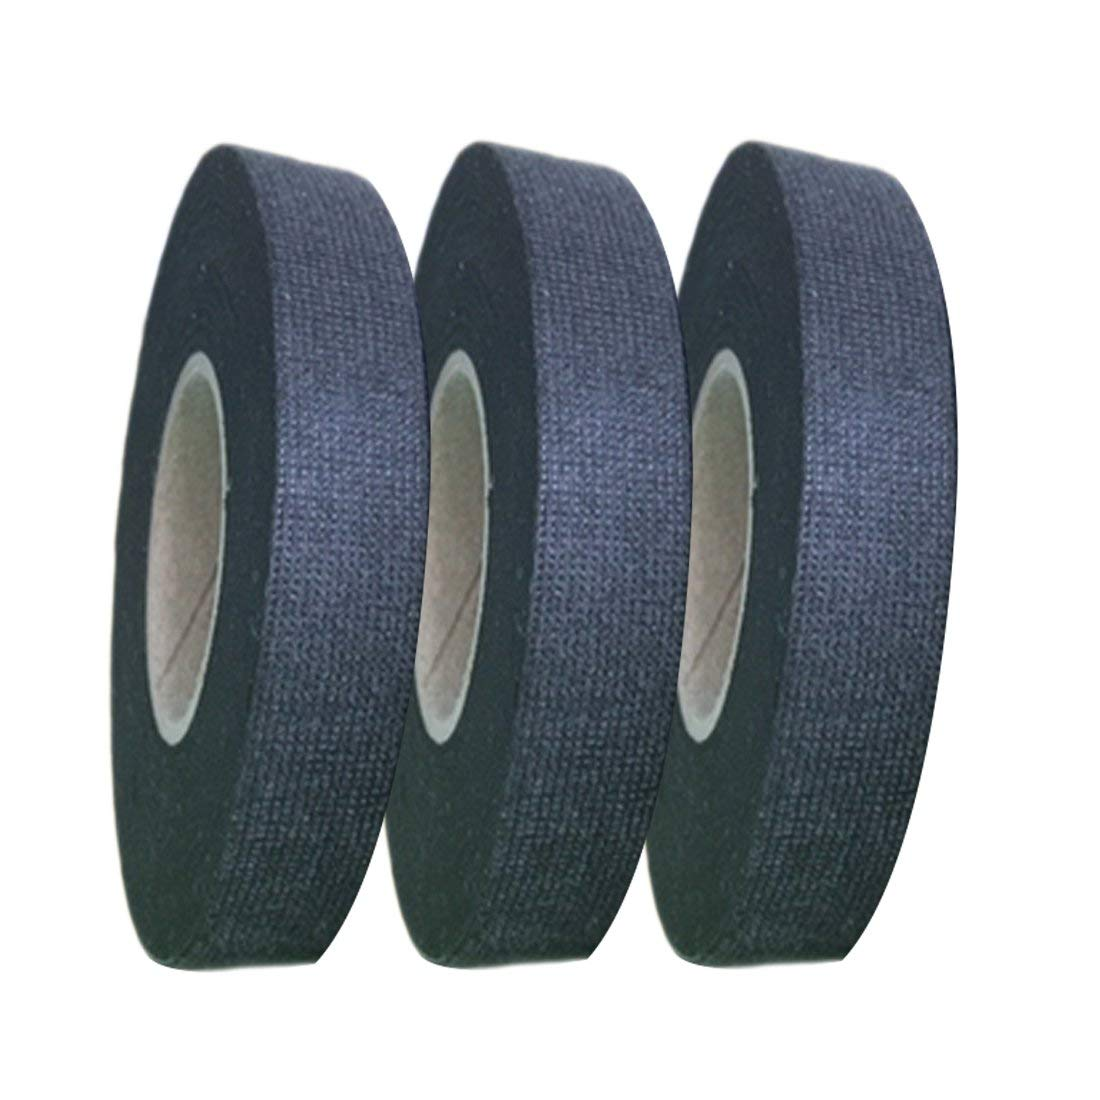 Cheap Tesa Harness Tape Find Deals On Line At Bmw Motorcycle Wiring Get Quotations Qixinstar 1pcs 19mm X 15m Adhesive Flannel Fabric Cloth Cable For Car Auto